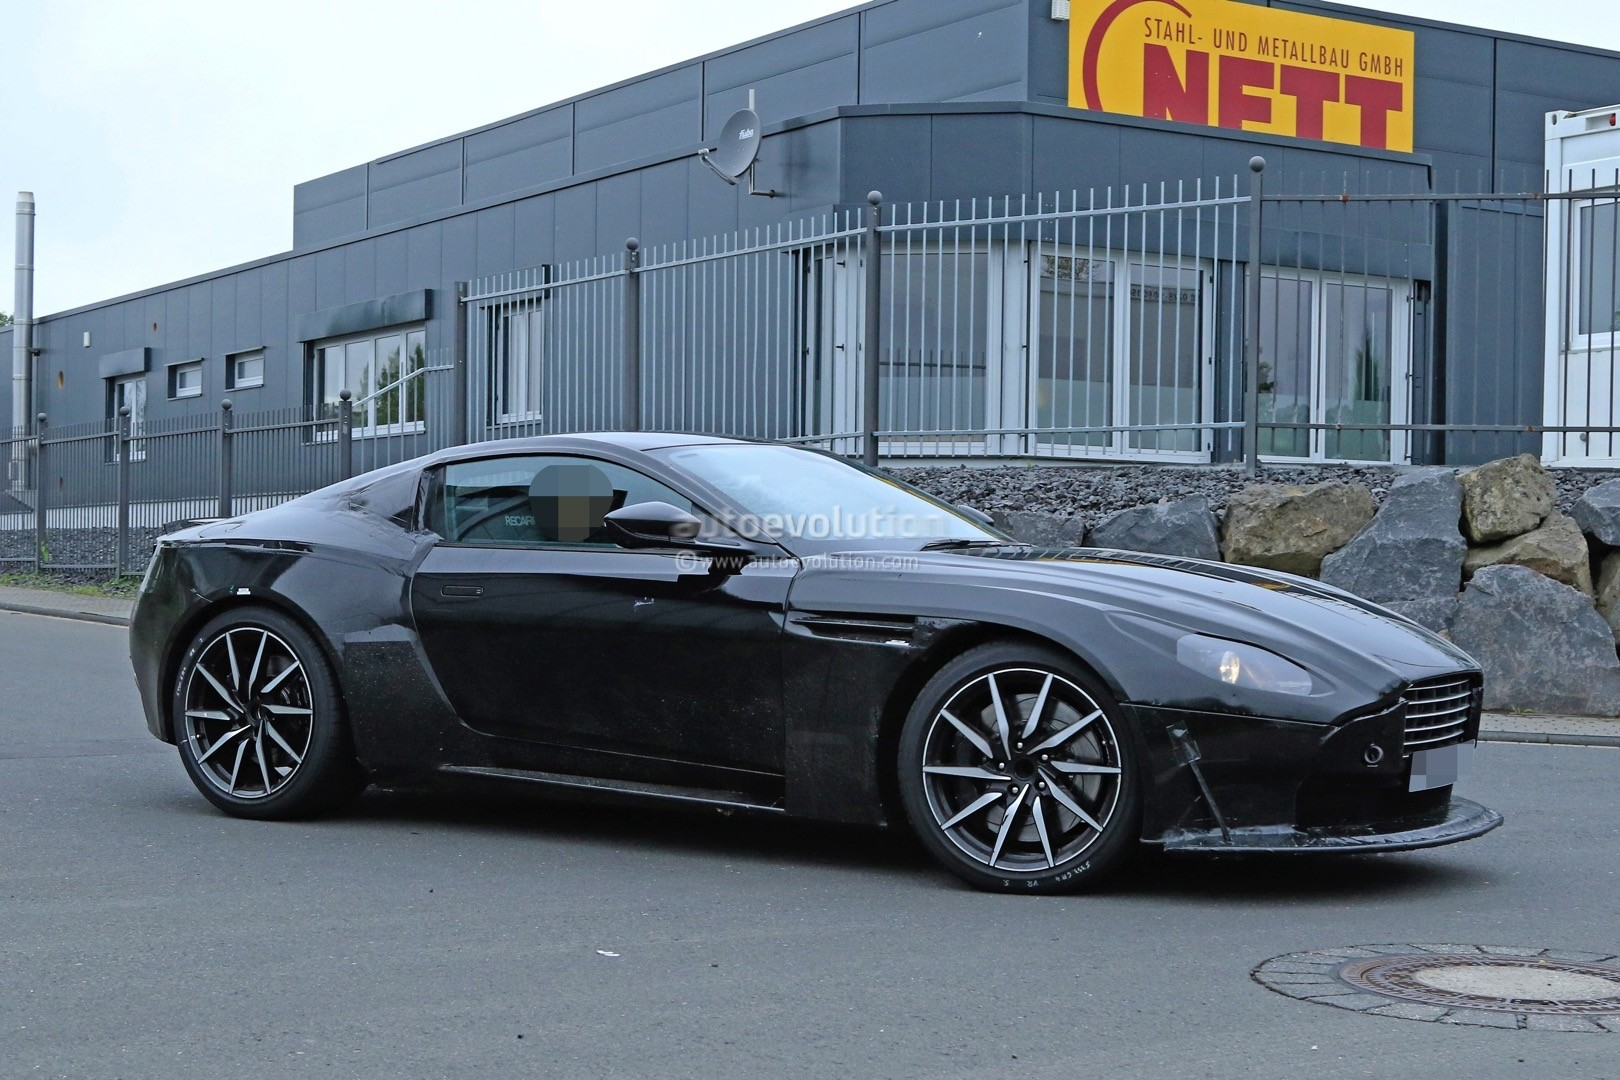 2018 aston martin v8 vantage spied has mercedes amg m178 4 0 twin turbo v8 autoevolution. Black Bedroom Furniture Sets. Home Design Ideas